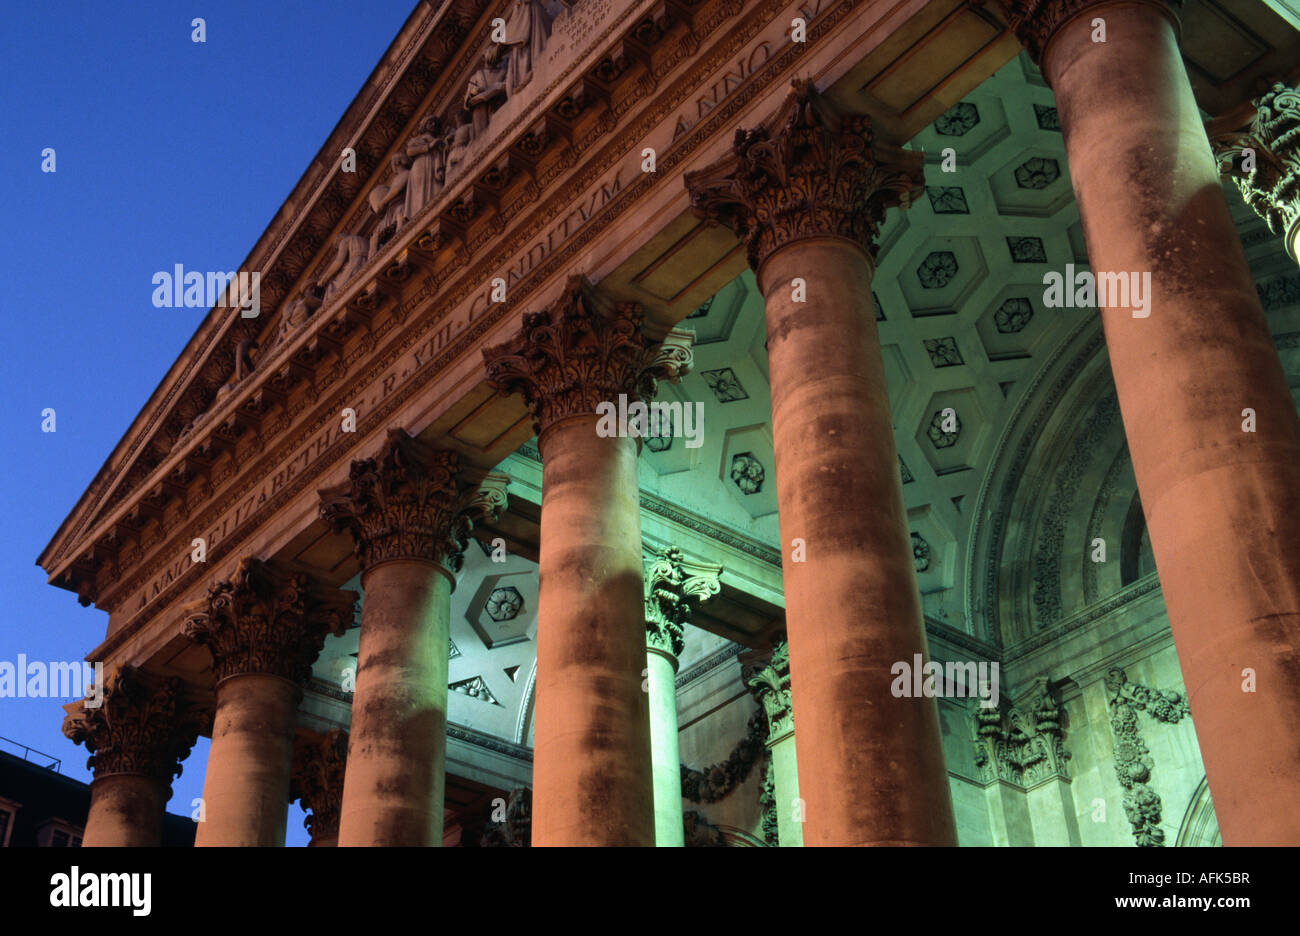 The majestic Royal Exchange building in central London. The Royal Exchange, designed by Sir William Tite and completed - Stock Image